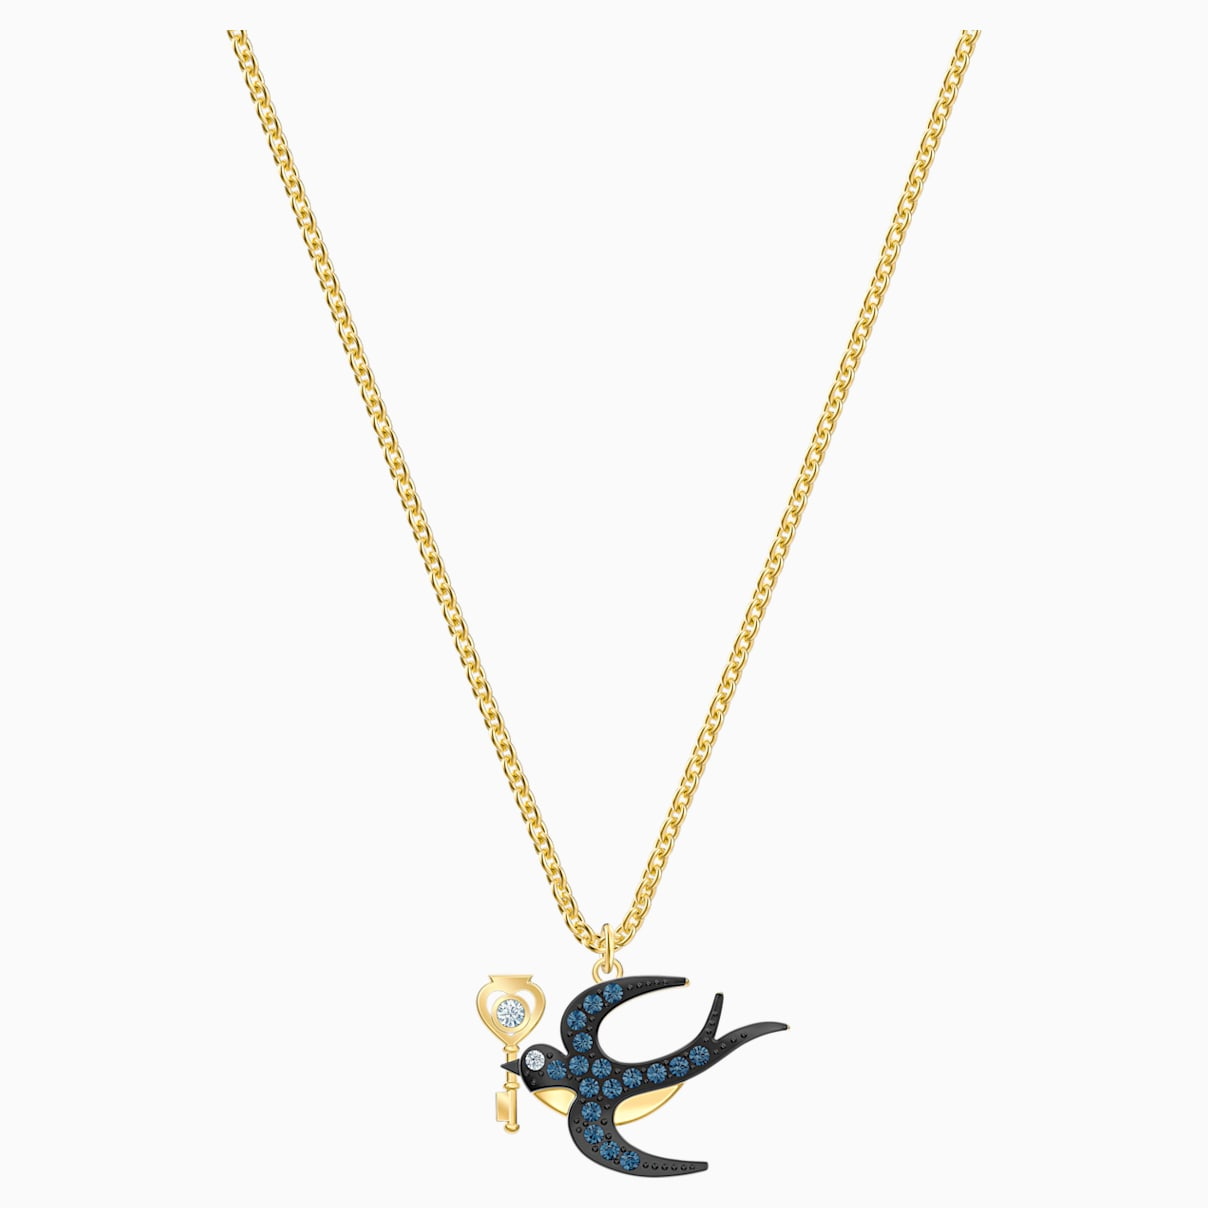 Collier Tarot Magic, bleu, Métal doré